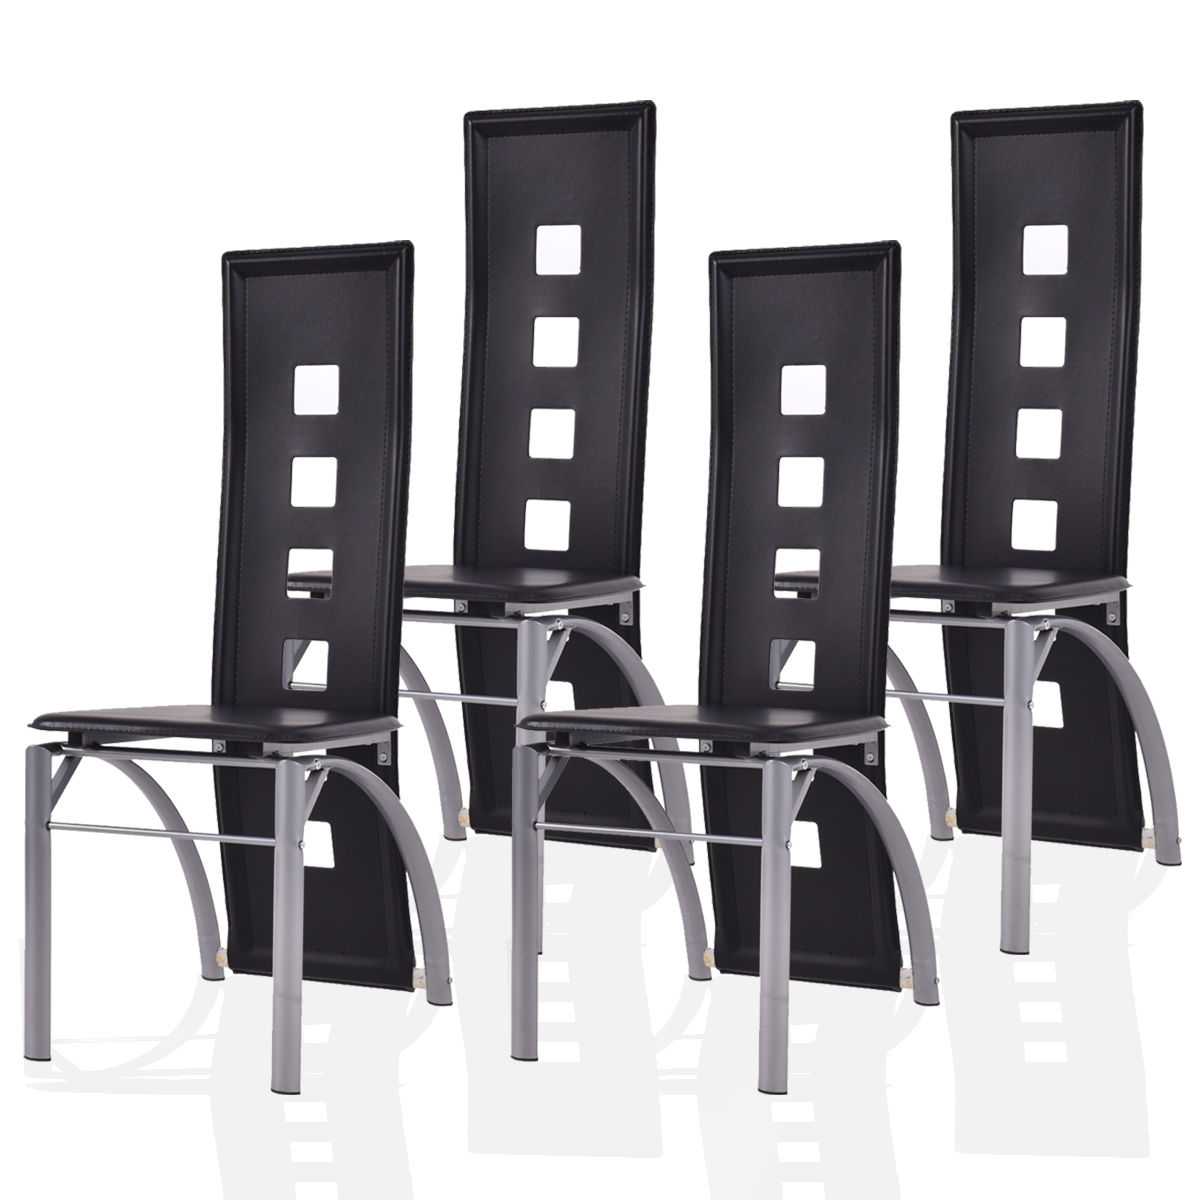 Costway Set of 4 Dining Chairs PU Leather Steel Frame High Back Home Furniture Black by Costway